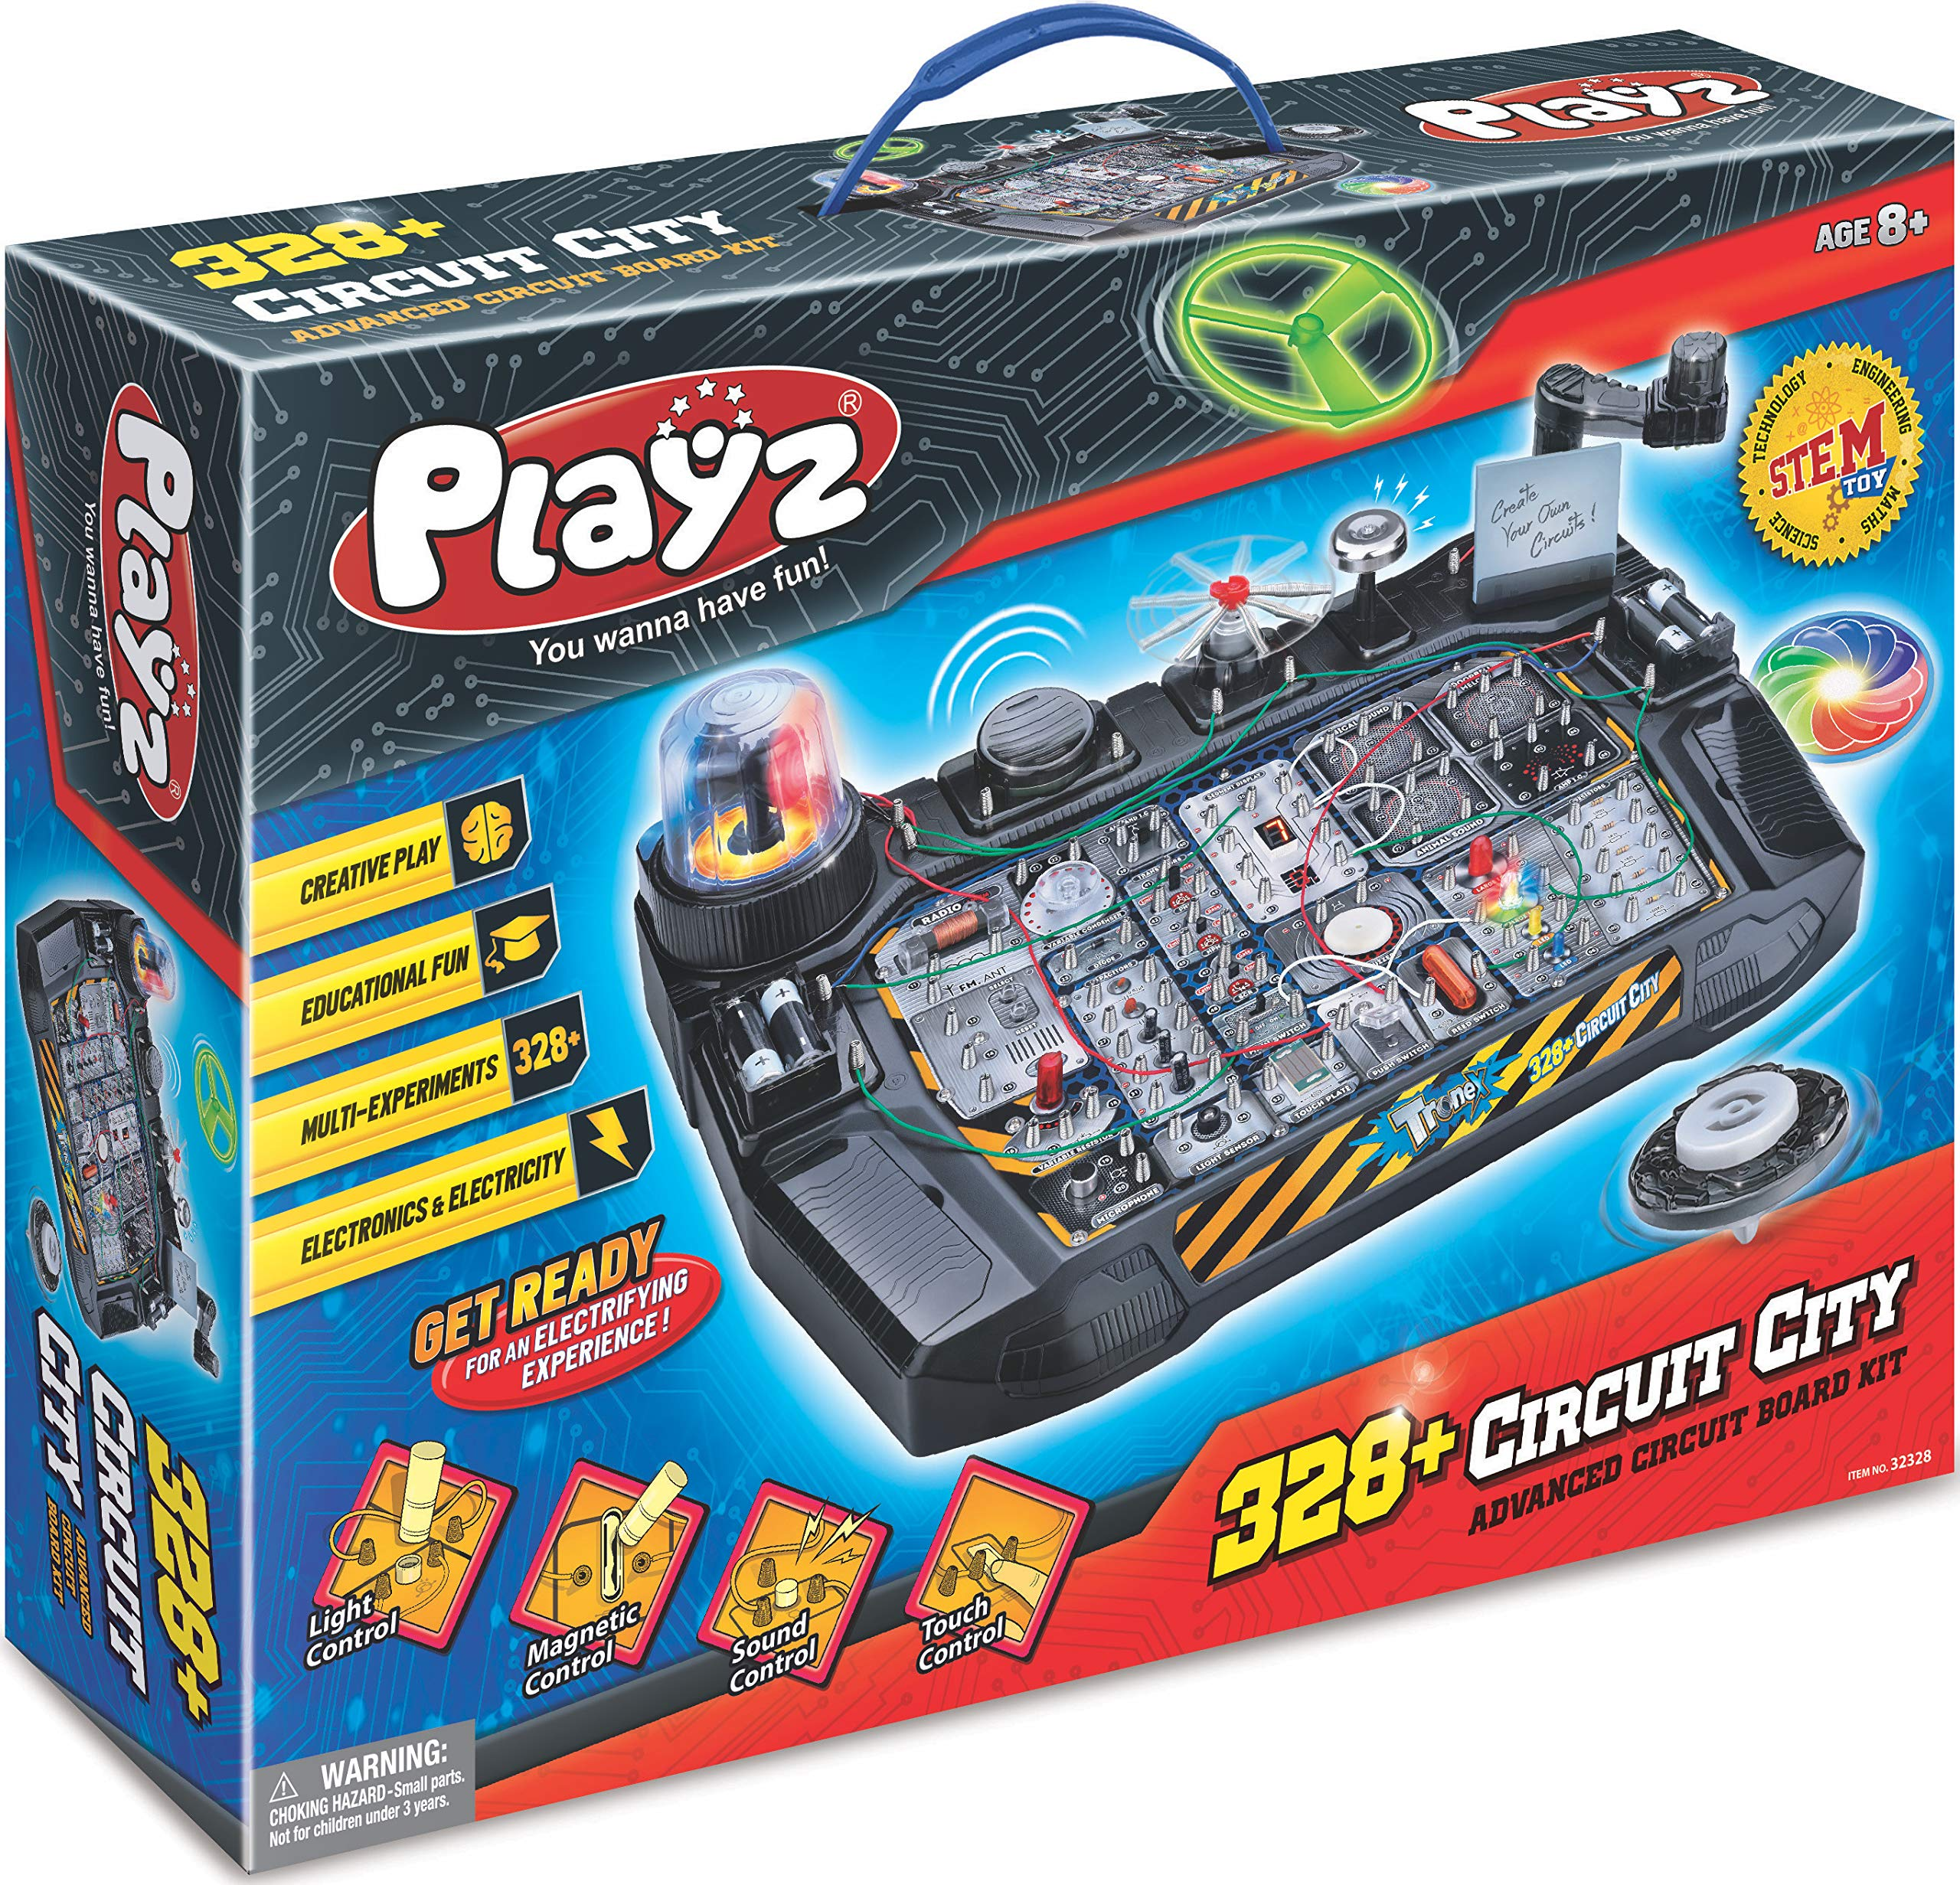 Playz Advanced Electronic Circuit Board Engineering Toy for Kids | 328+ Educational Experiments to Wire & Build Smart Connections Using Creative Knowledge of Electricity | Science Gift for Children by Playz